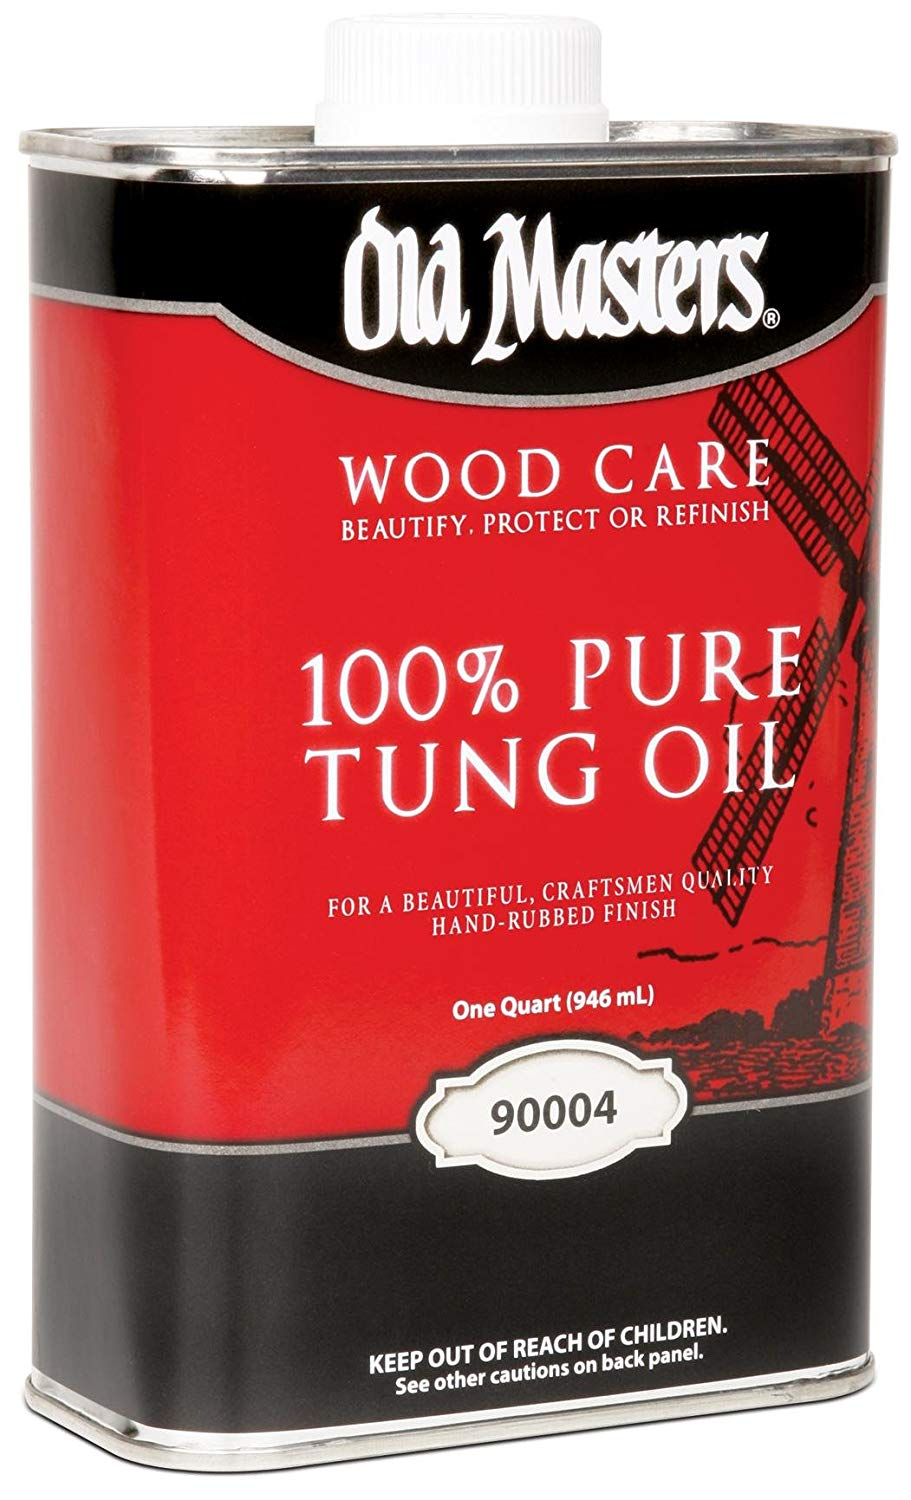 Old Masters Pure Tung Oil.